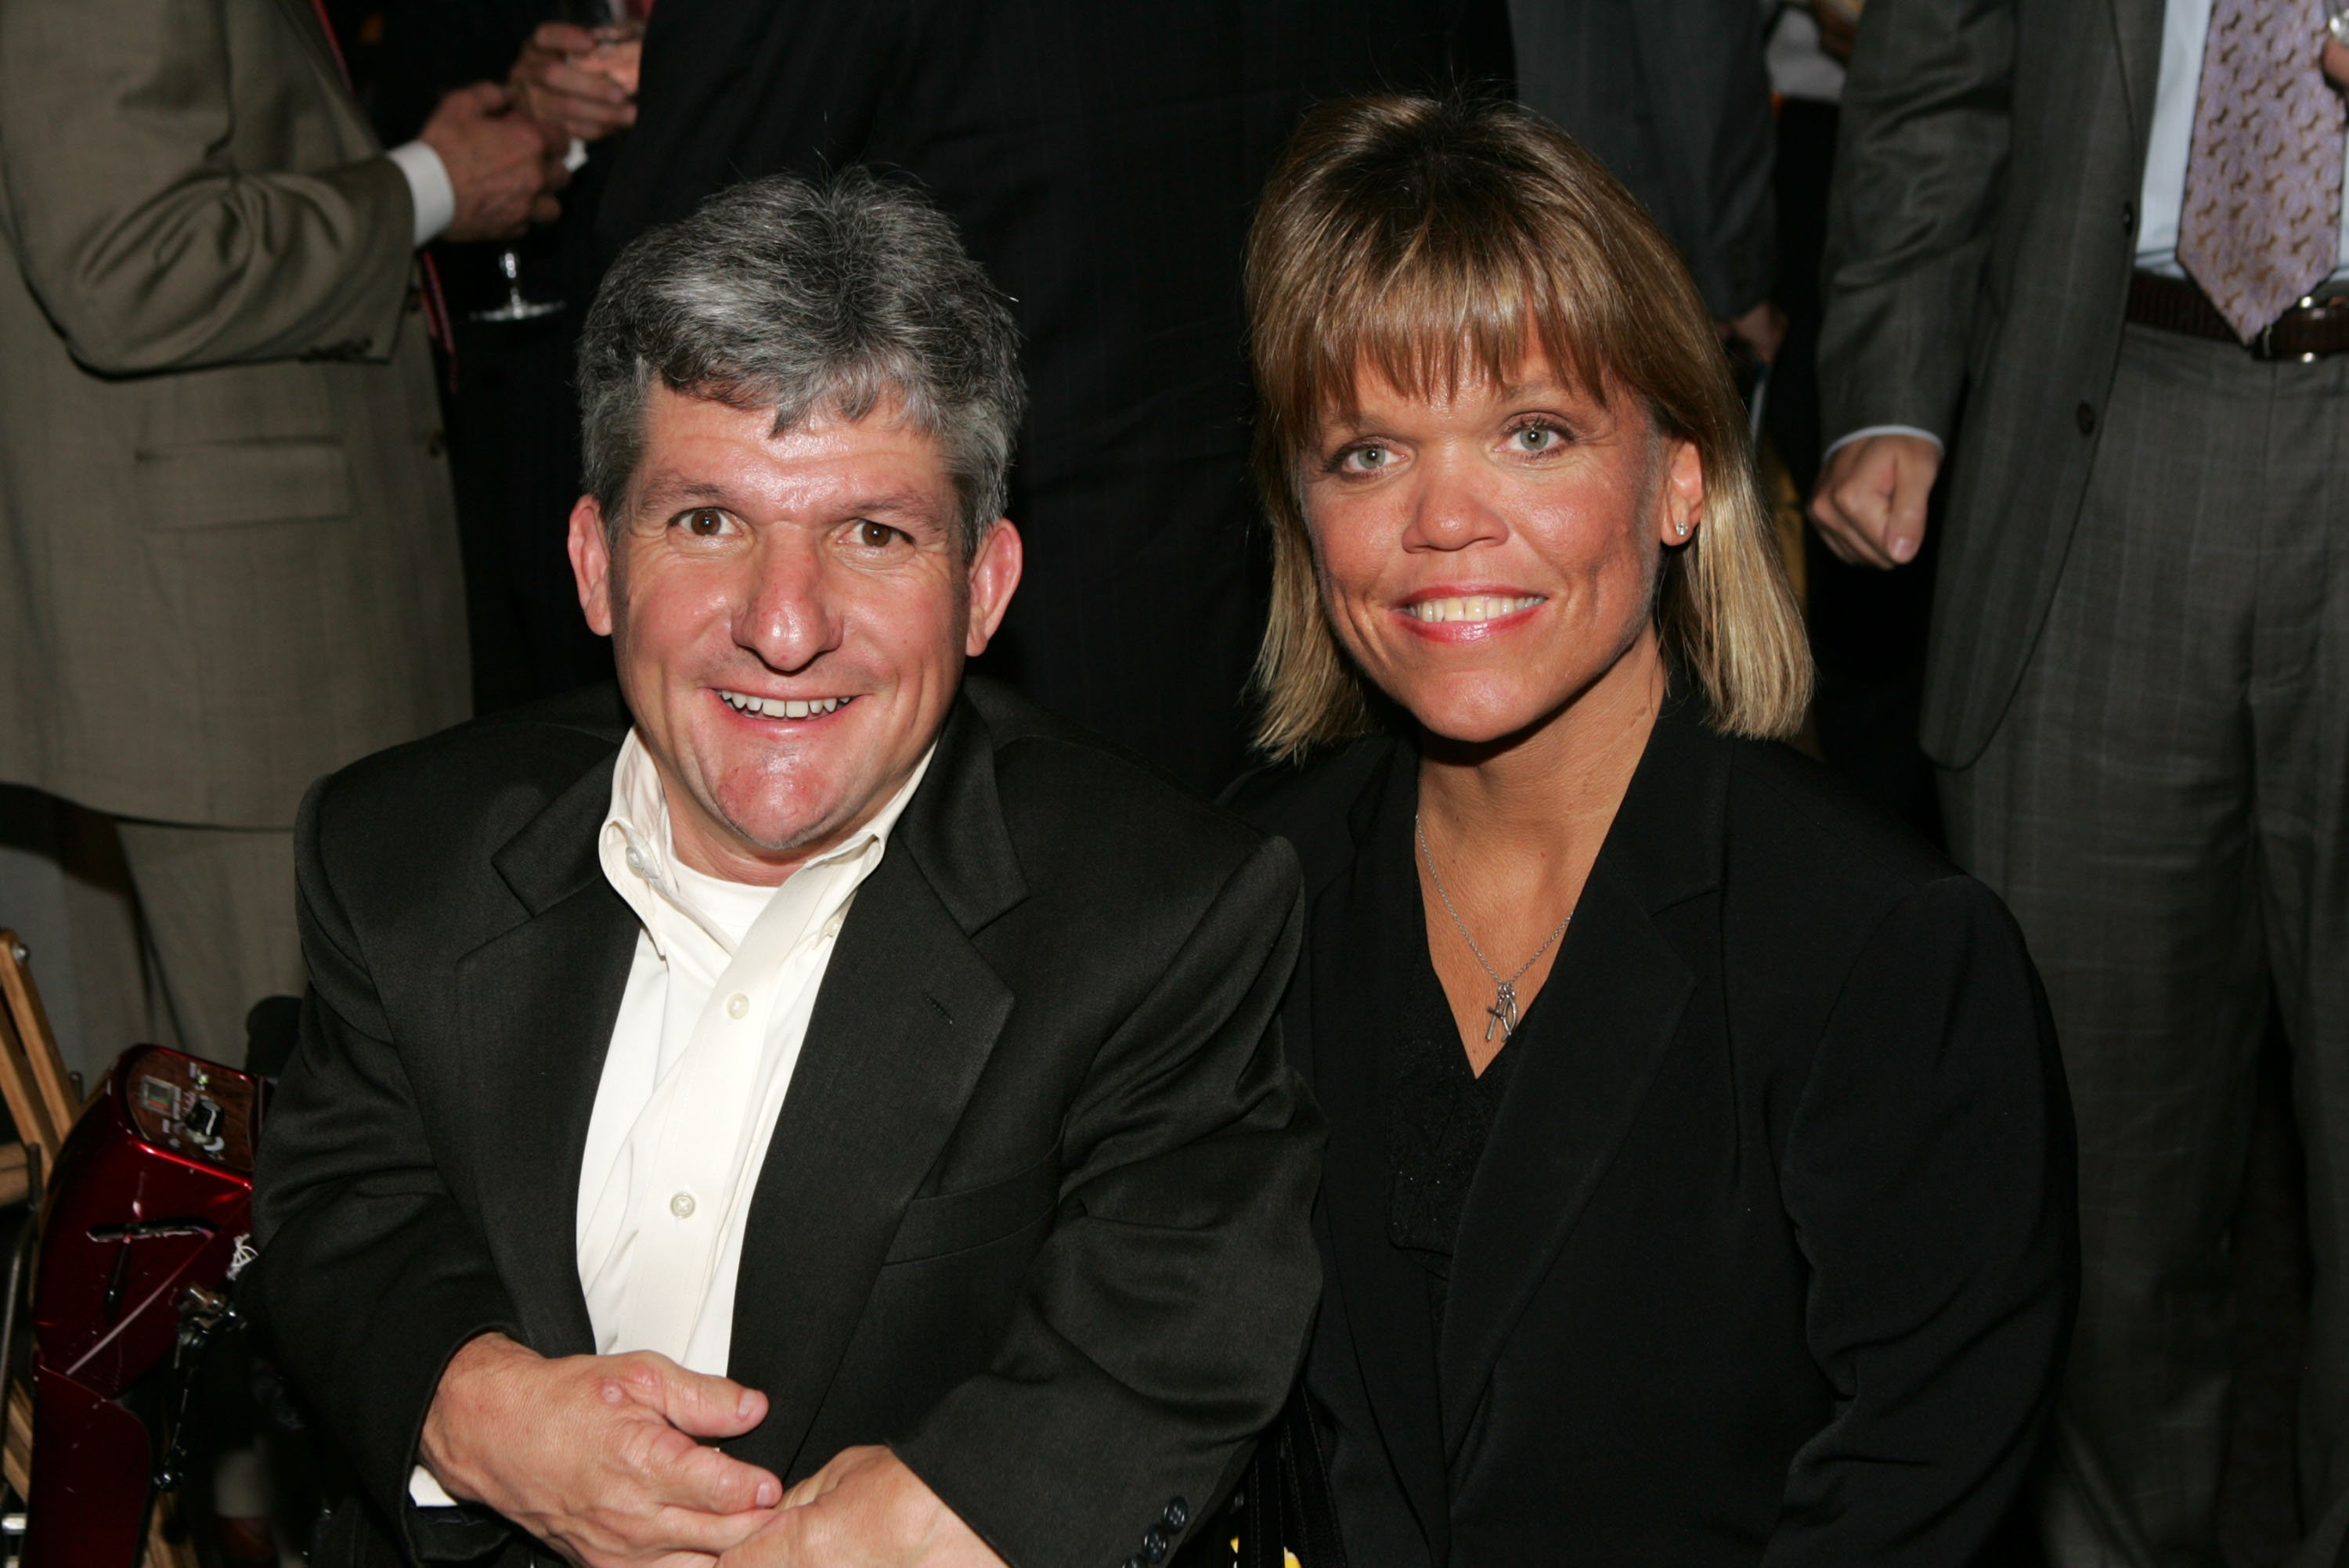 Matt and Amy Roloff  attends the Discovery Upfront Presentation in New York City on April 23, 2008 | Photo: Getty Images